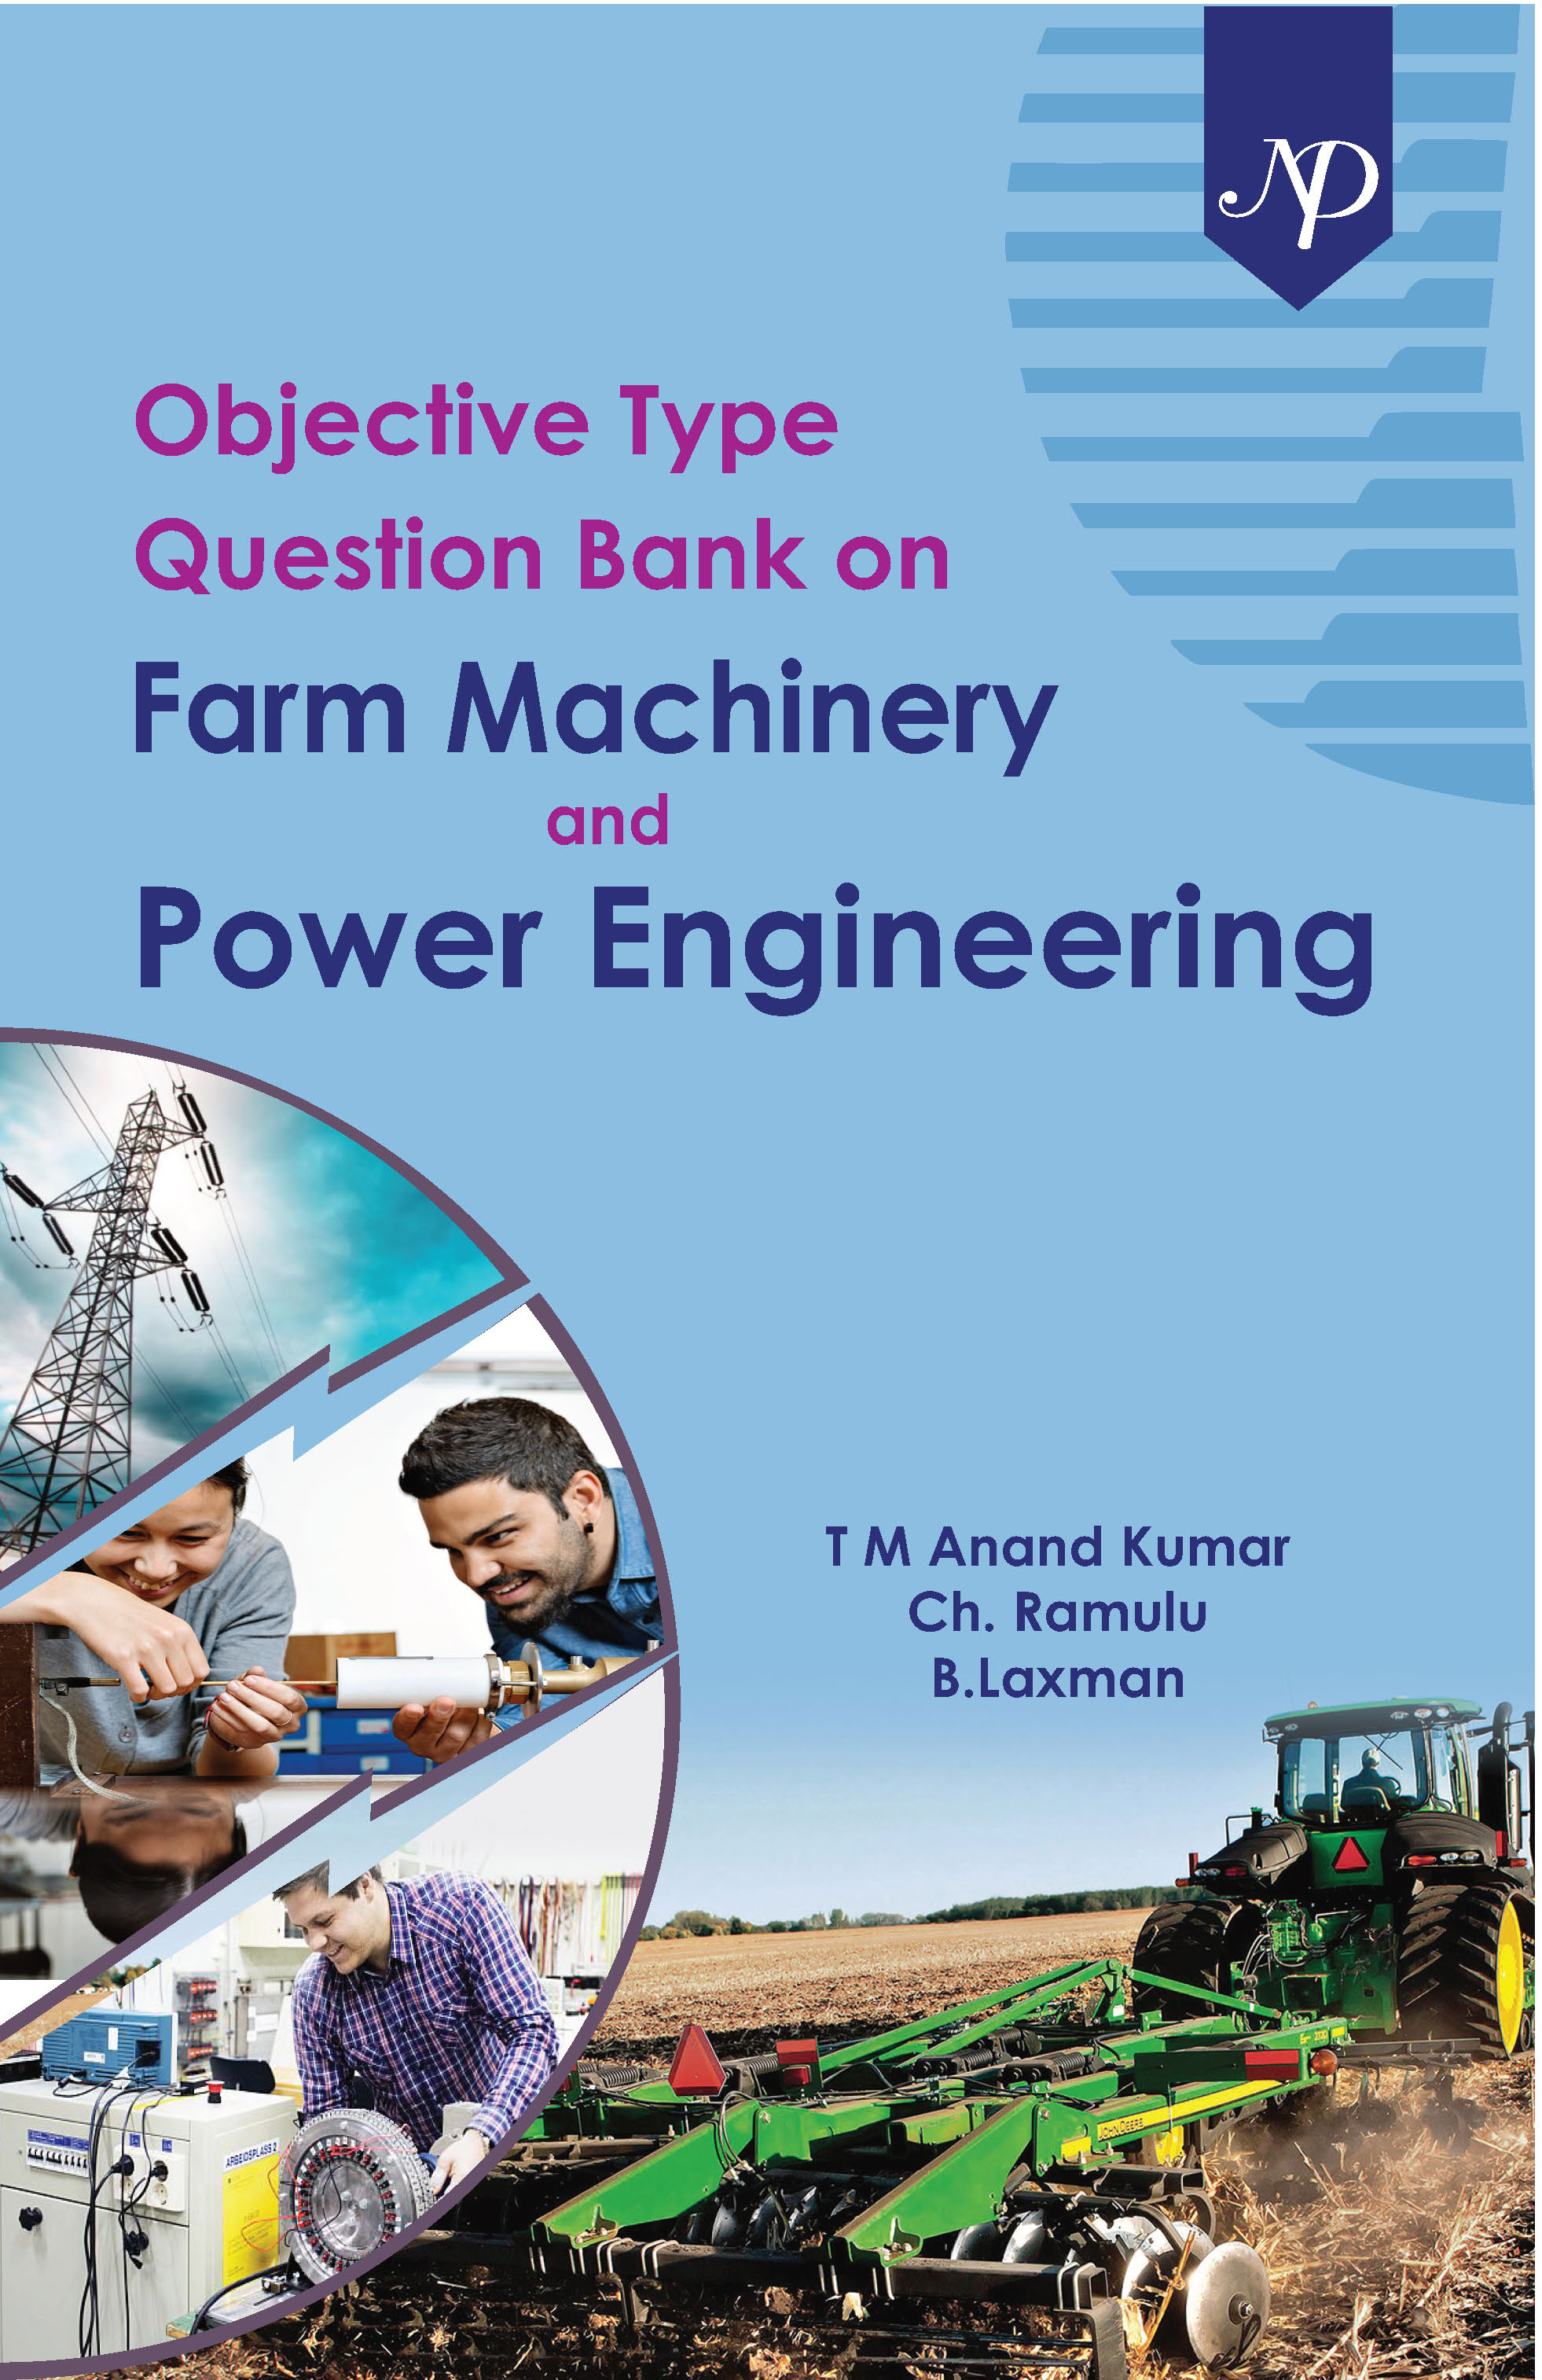 Objective Type Question Bank farm machinery and power engineering.jpg